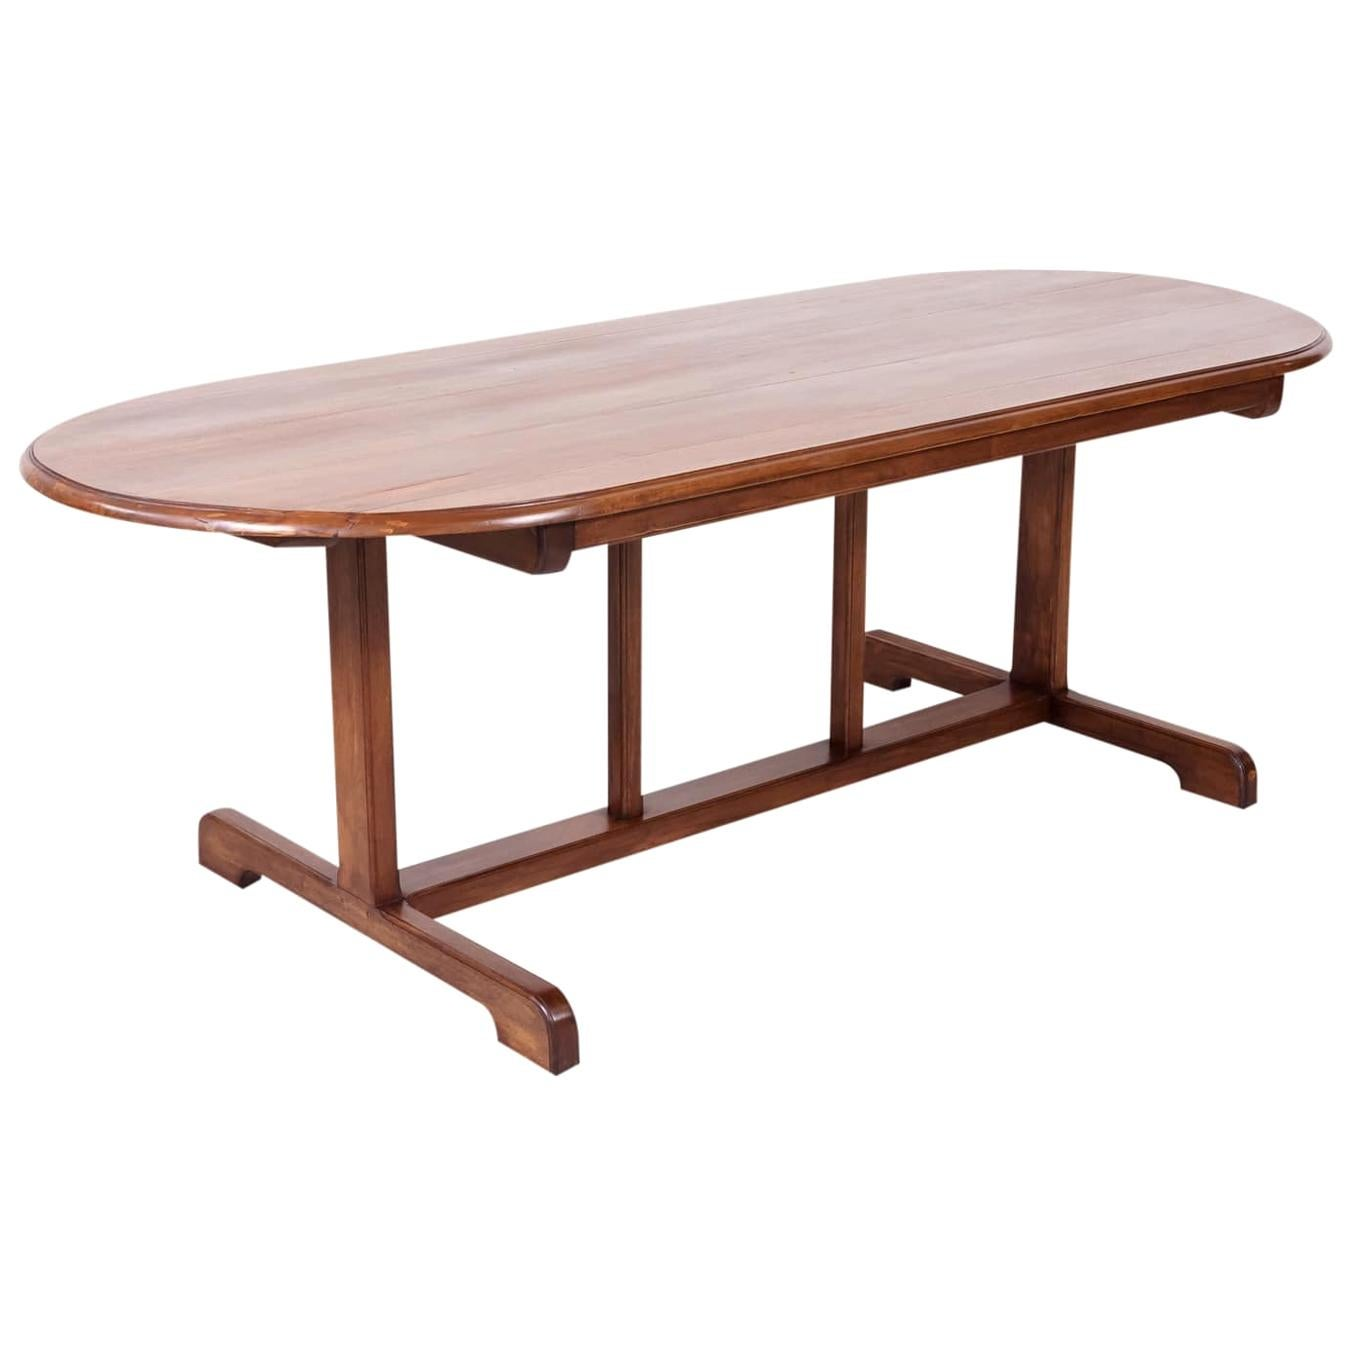 Large Walnut 19th Century French Oval Vendange Table or Wine Tasting Table